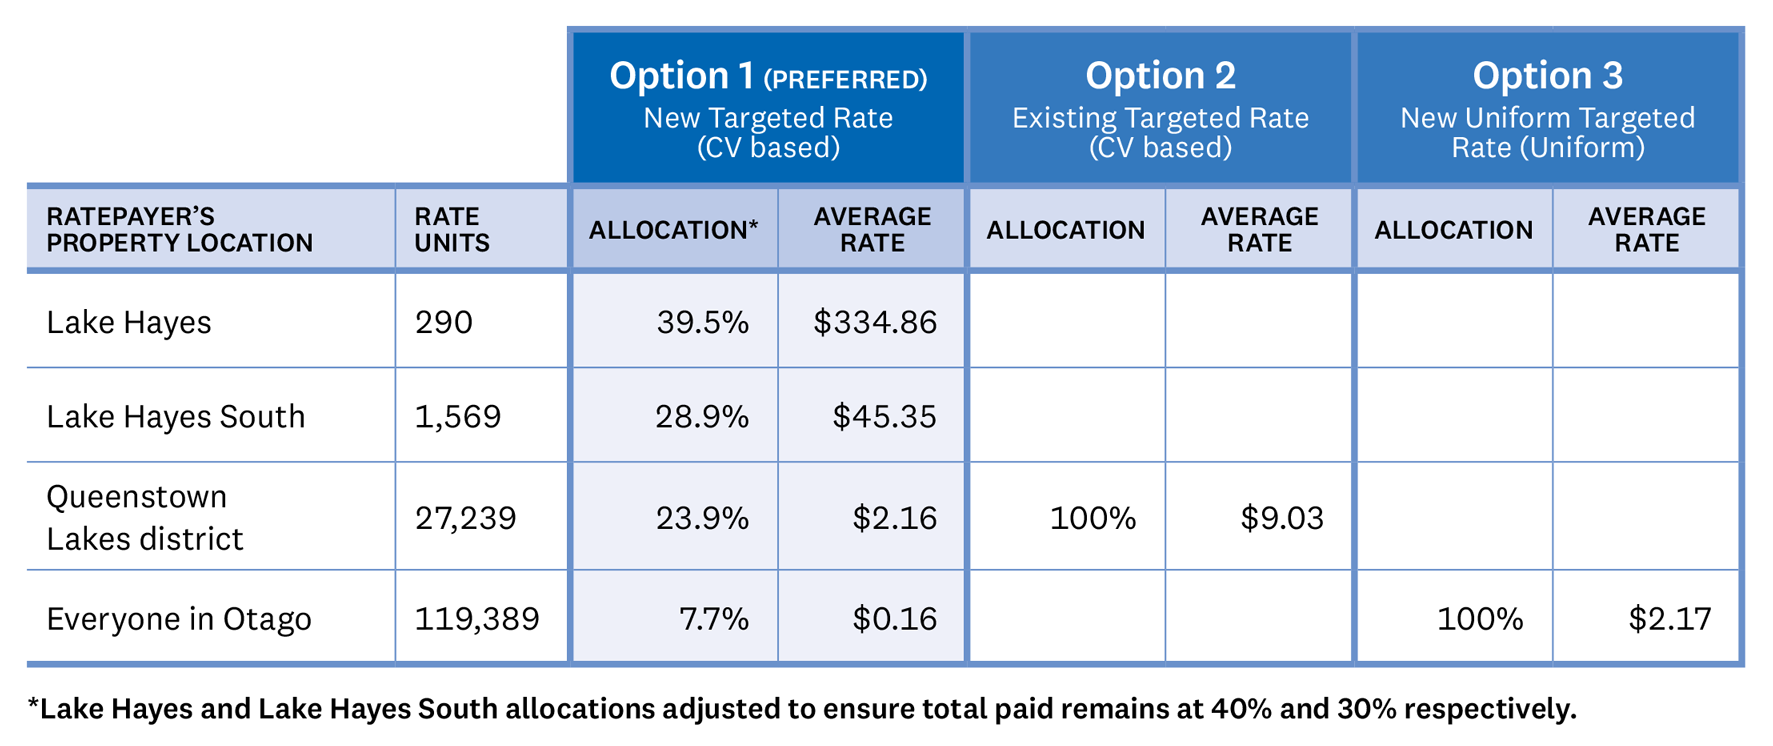 TABLE Under Option 1 which is our preference, there would be a new targeted rate based on capital value. The 290 ratepayers in Lake Hayes would pay 39.5% of the allocated cost with an average rate of $334.86, the 1569 ratepayers in Lake Hayes South would pay 28.9% of the allocated cost with an average rate of $45.35, the 27,239 ratepayers in the Queenstown Lakes District would pay 23.9% of the allocated cost with an average rate of $2.16, and the remaining 119,389 ratepayers in Otago would cover the remaining 7.7% of the allocated cost with an average rate of $0.16. Option 2 would be funded via the existing river and water management targeted rate. The ratepayers of the Queenstown Lakes district would pay 100% of the cost with an average rate of $9.03. Option 3 would be funded by a new targeted uniform rate where everyone in Otago pays the same rate of $2.17.